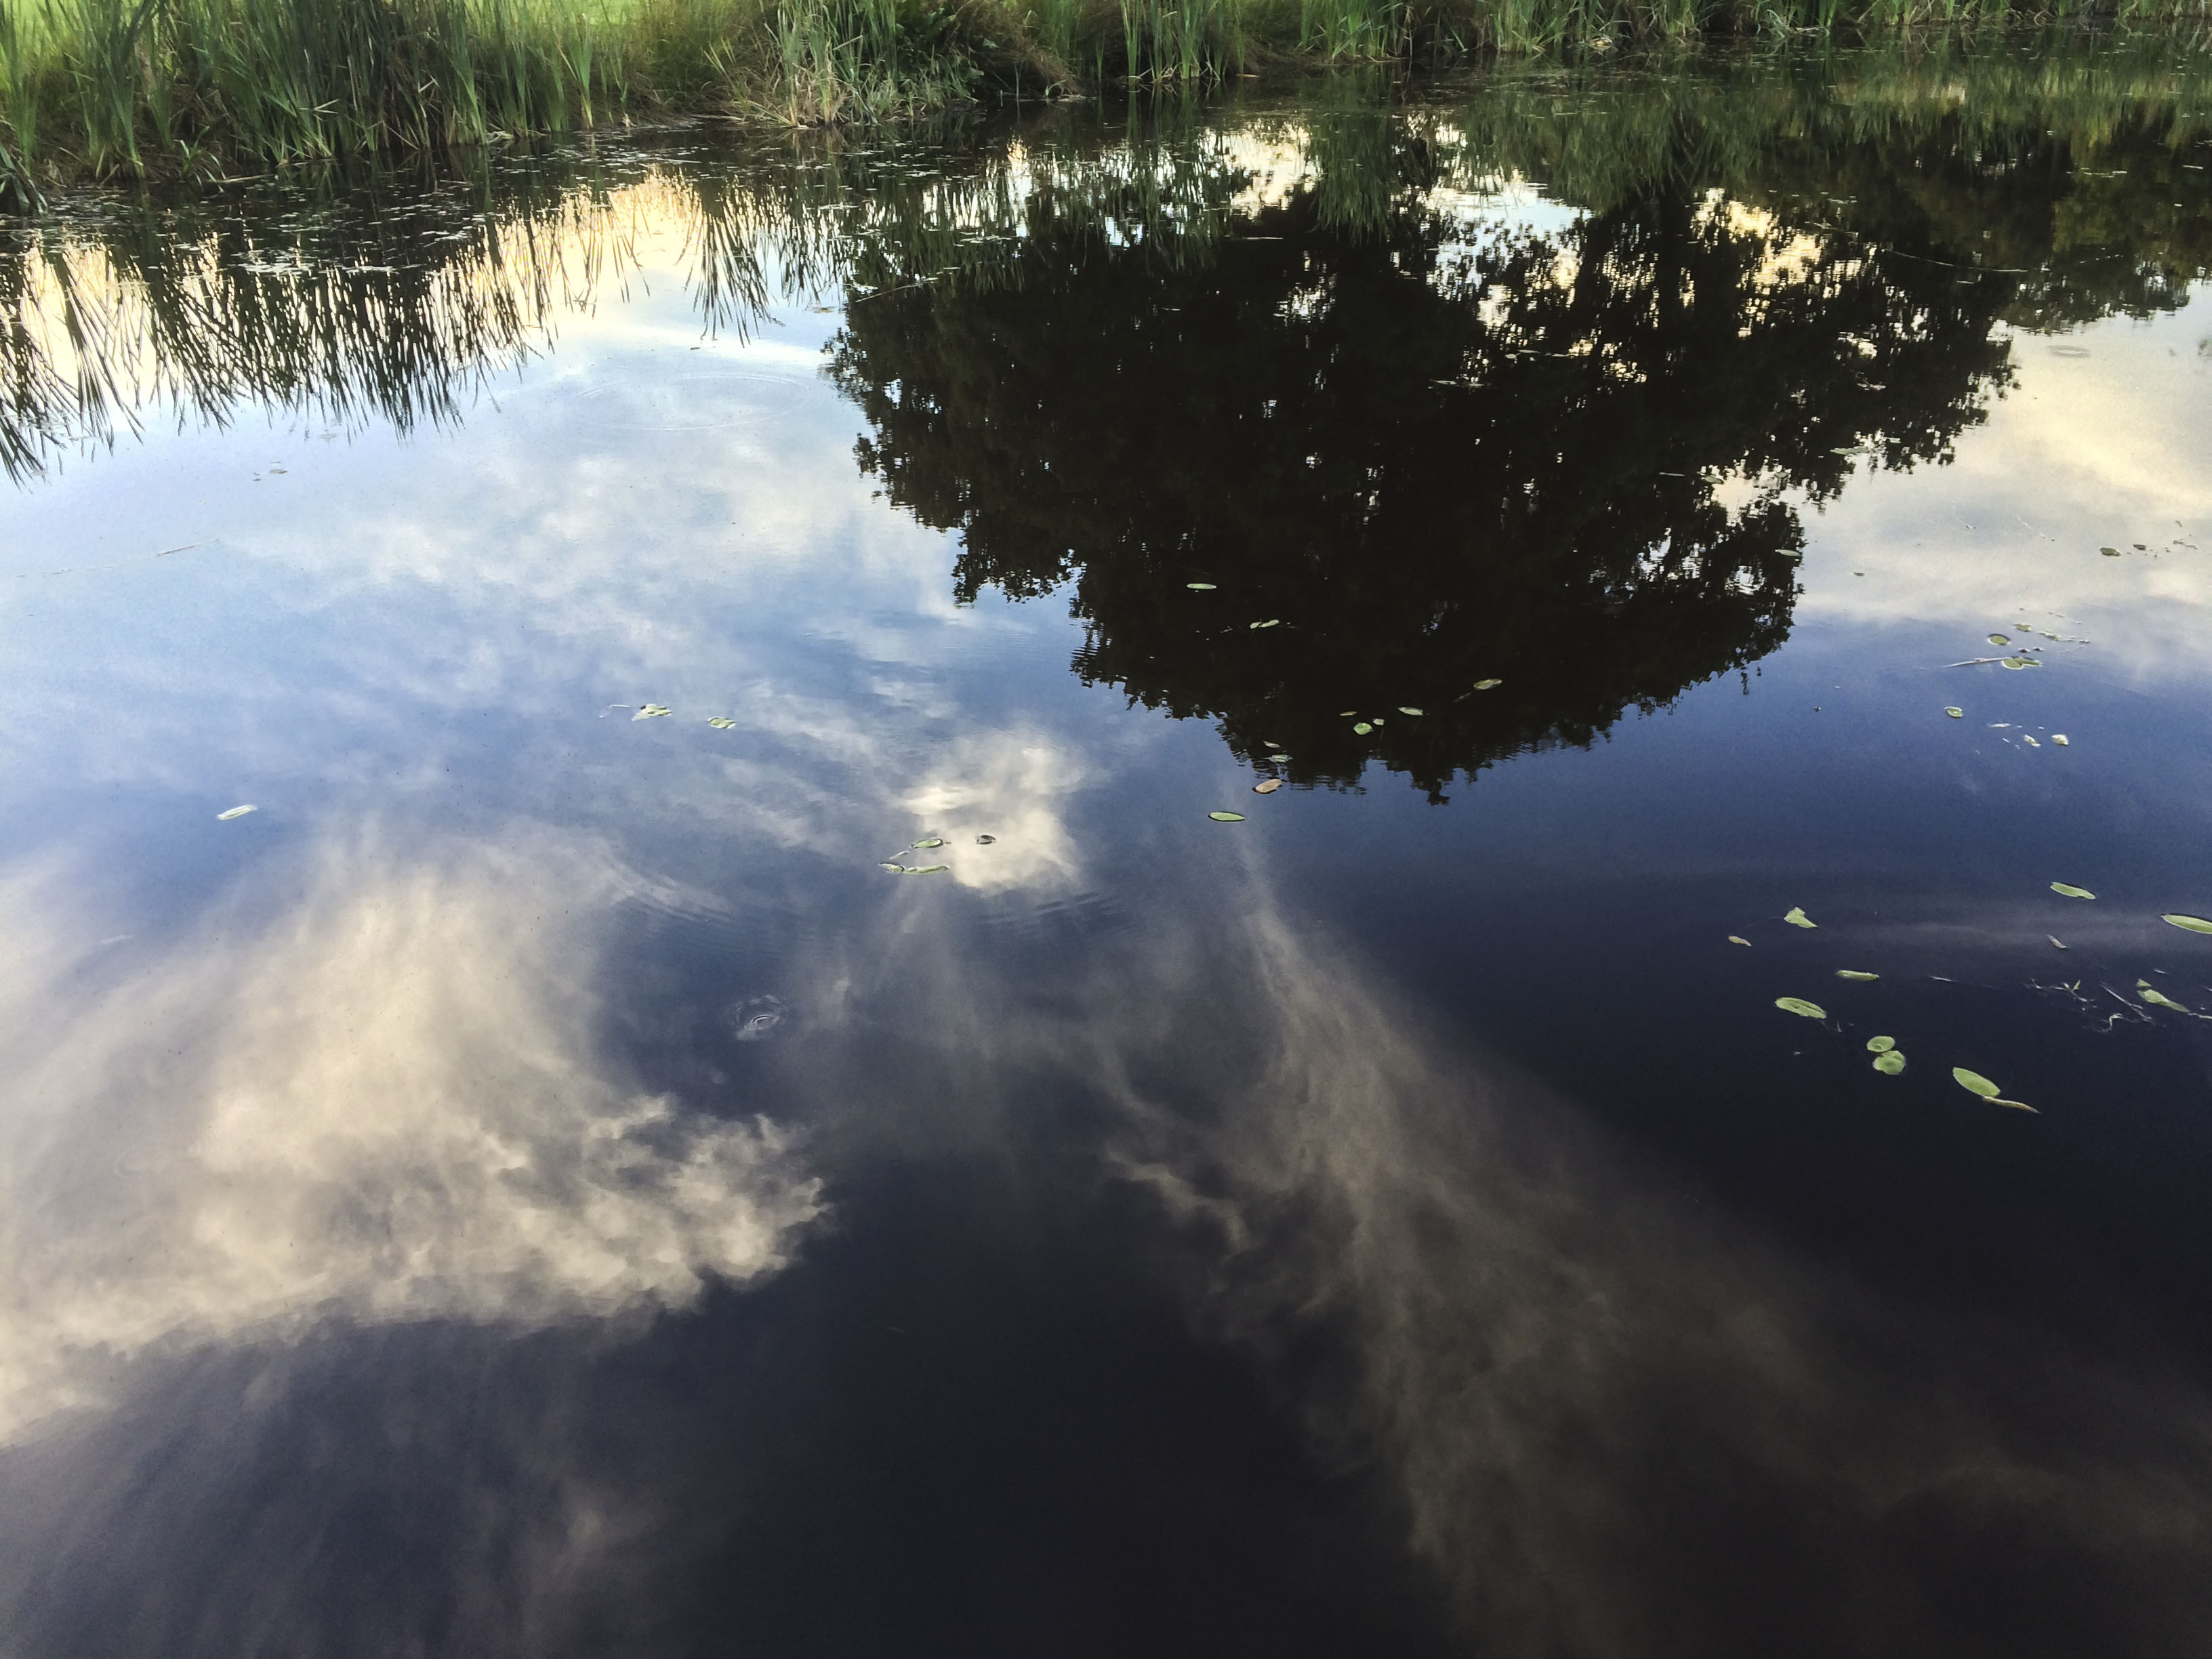 Reflections # 1